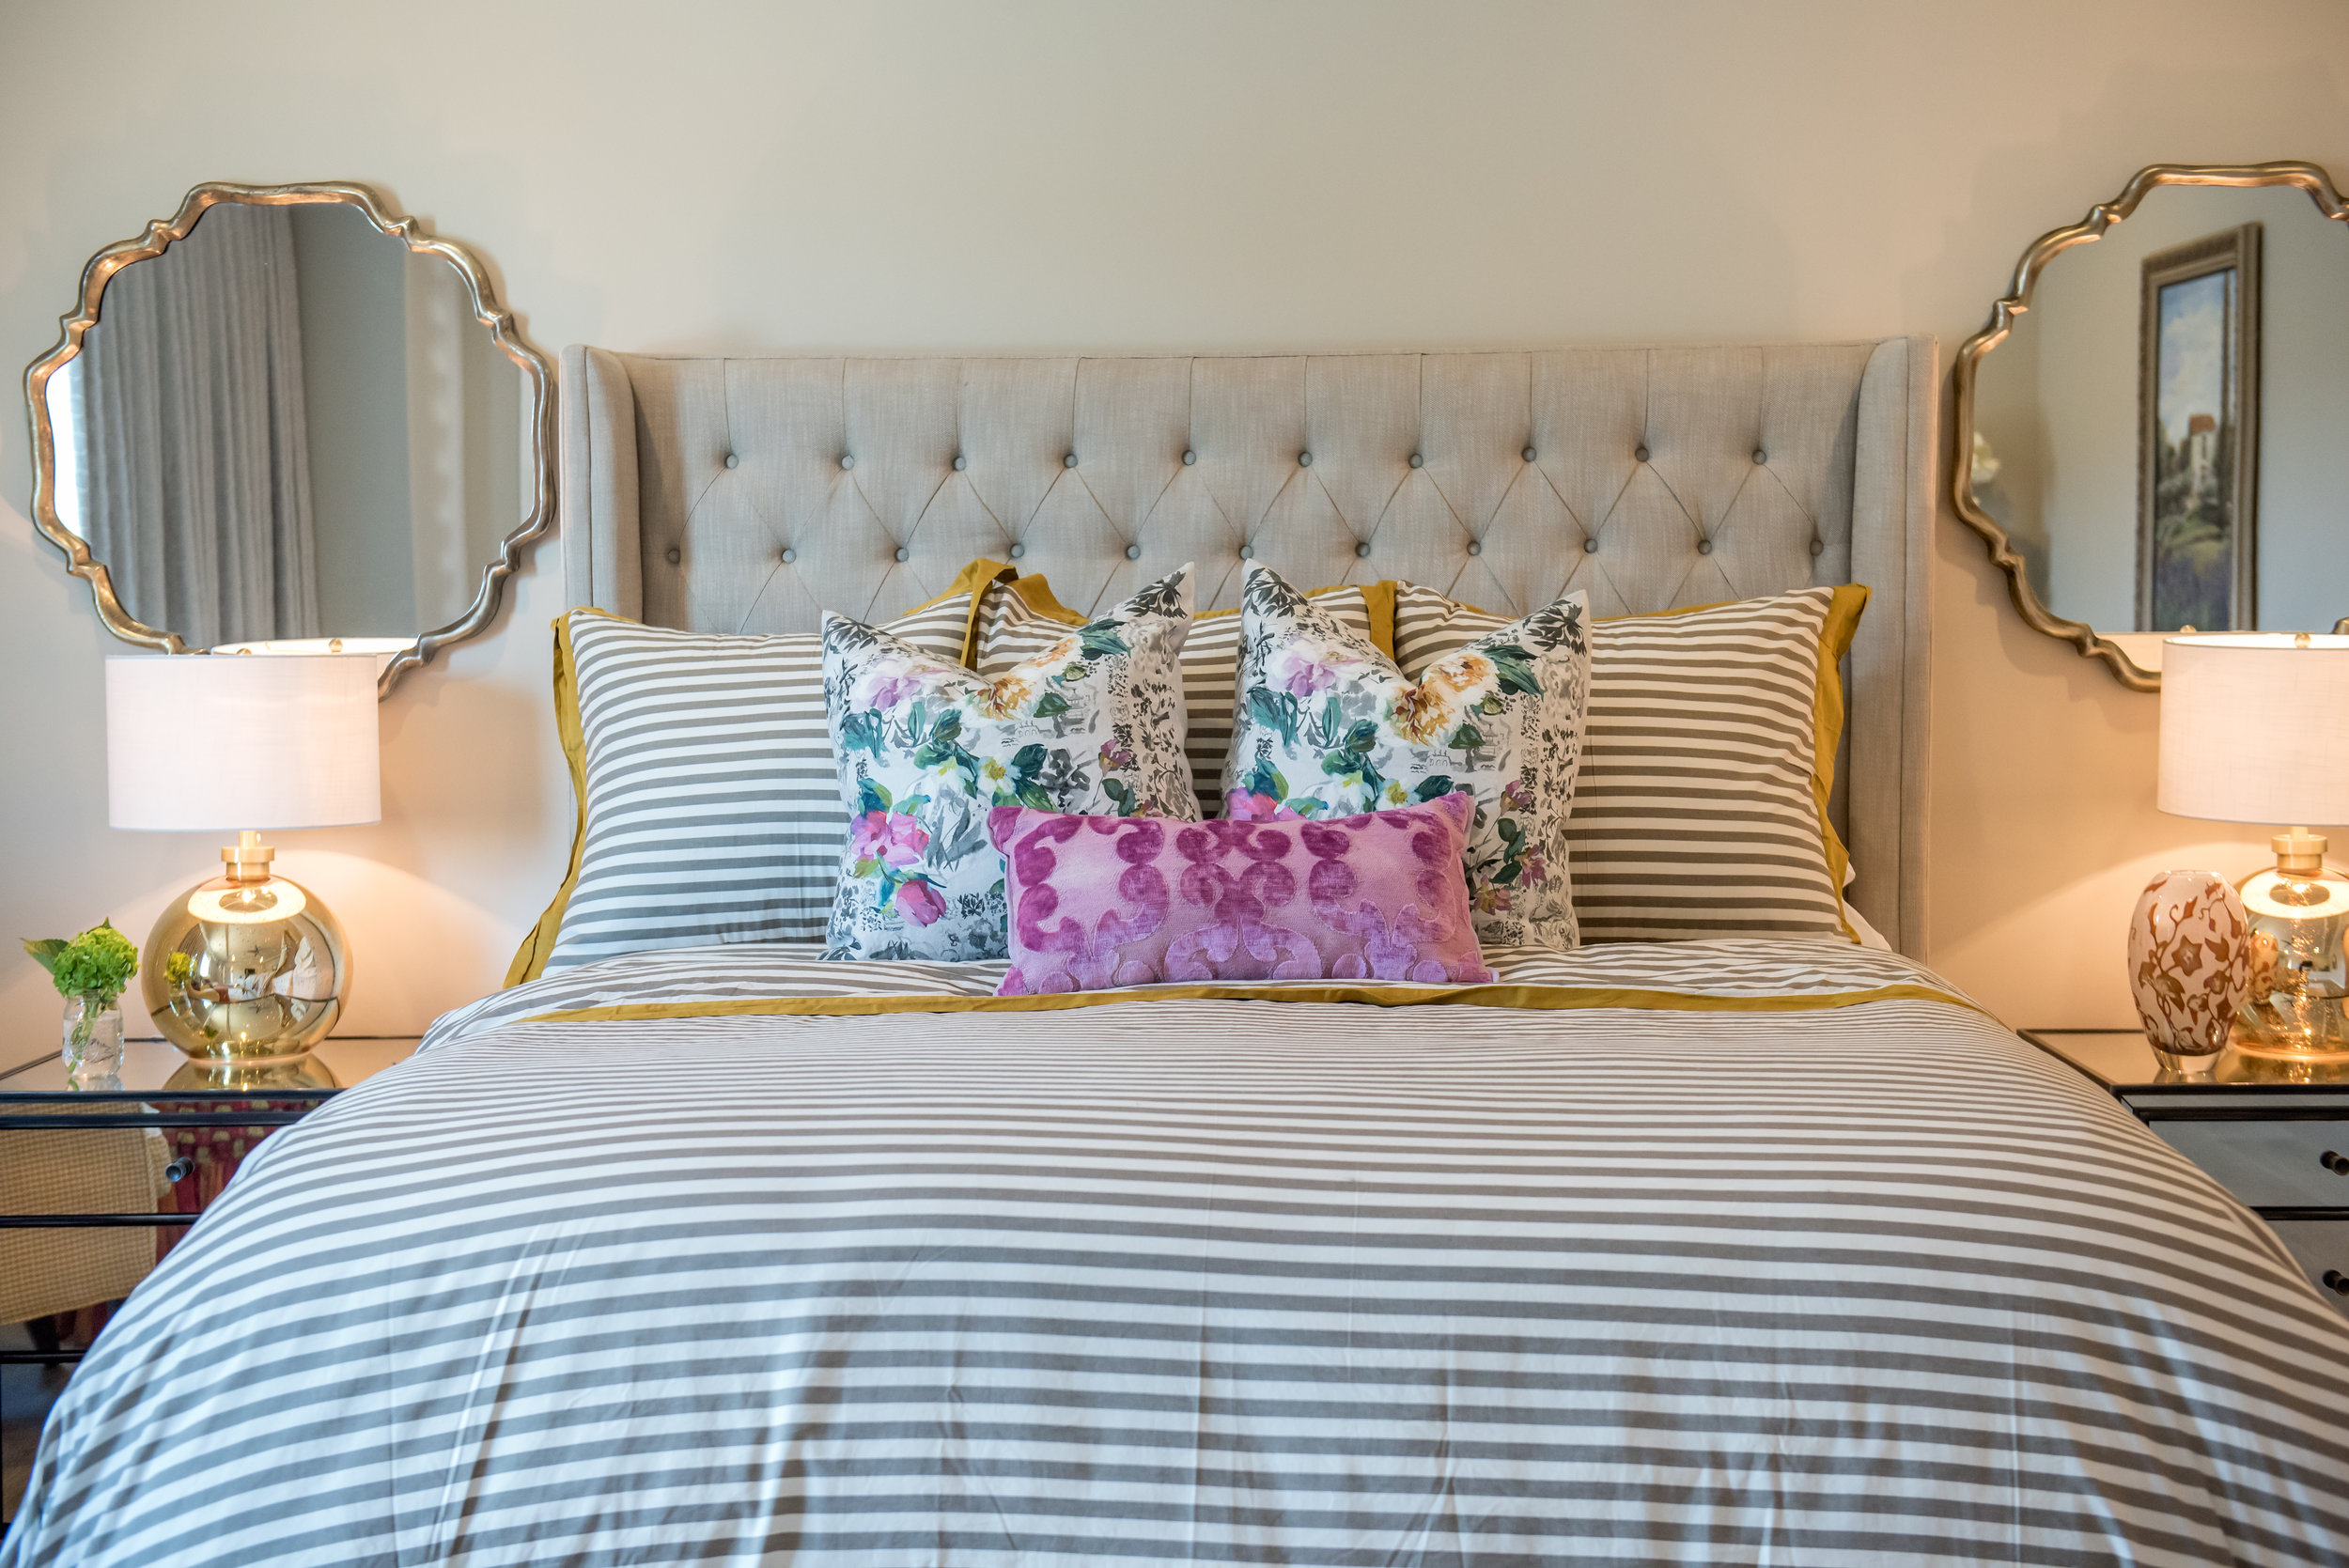 29 Scottsdale+Transitional+Masterbedroom+Designersguild+floral+brights.jpg